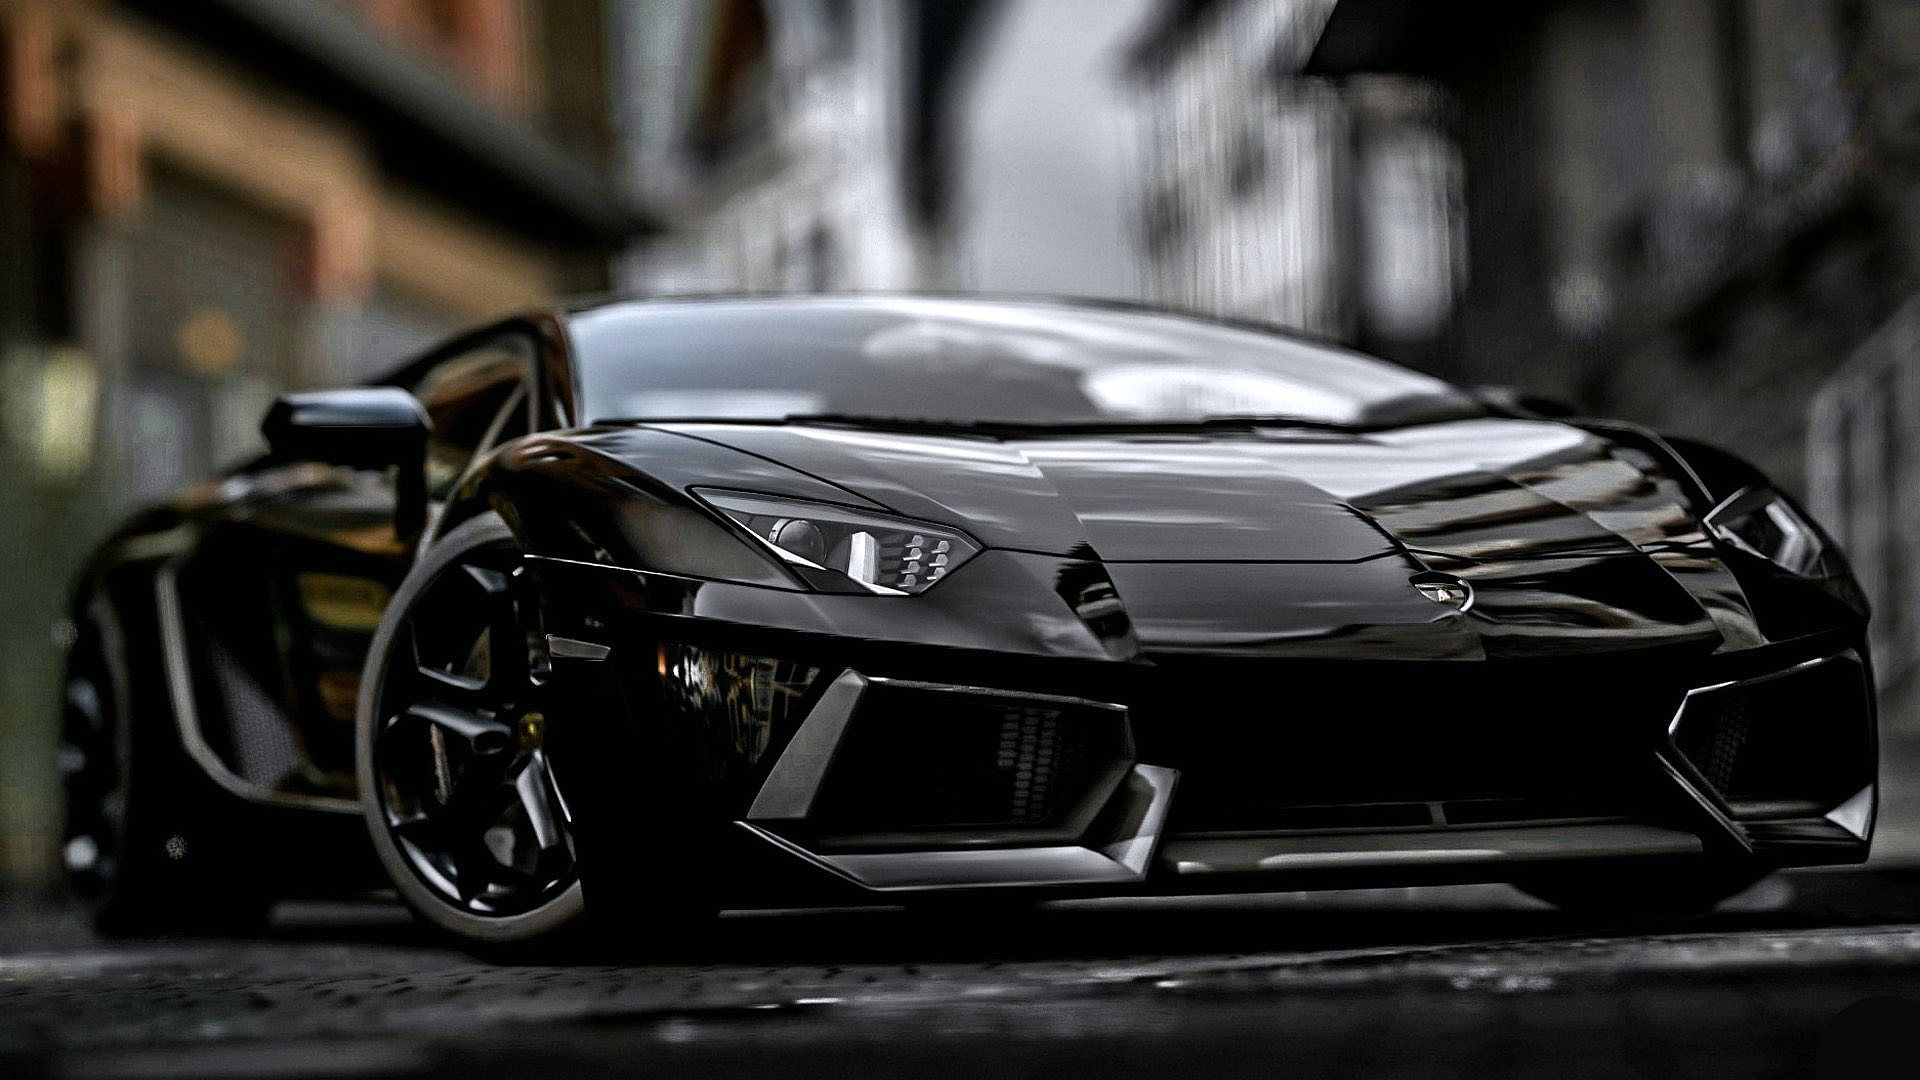 Aventador Wallpaper Phone alr